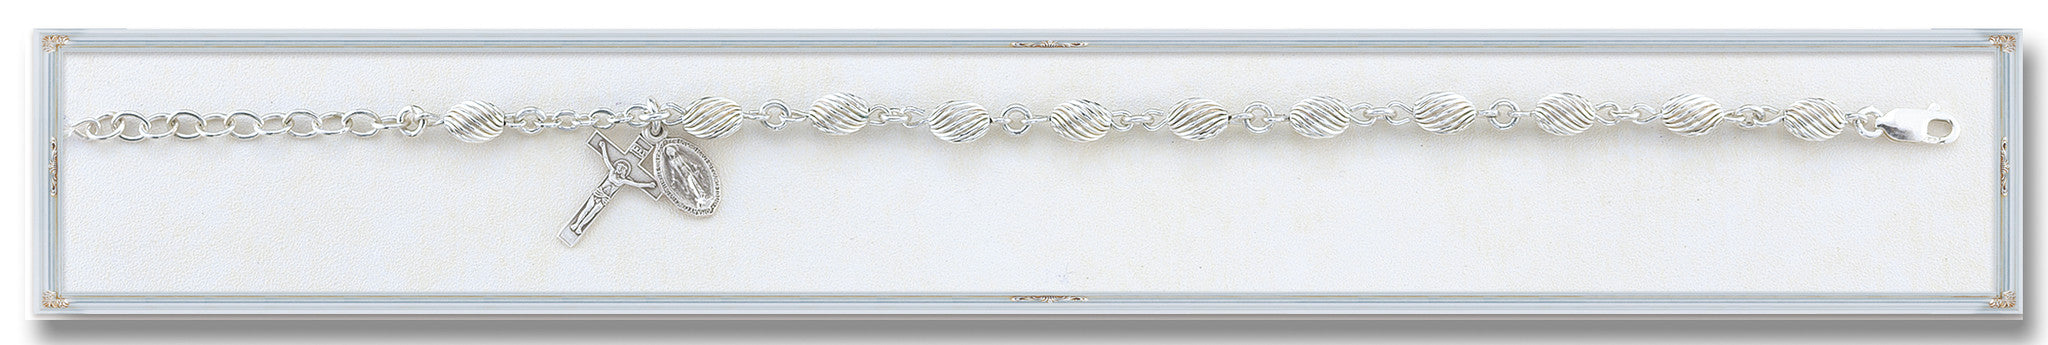 corrugated_oval_sterling_silver_bracelet